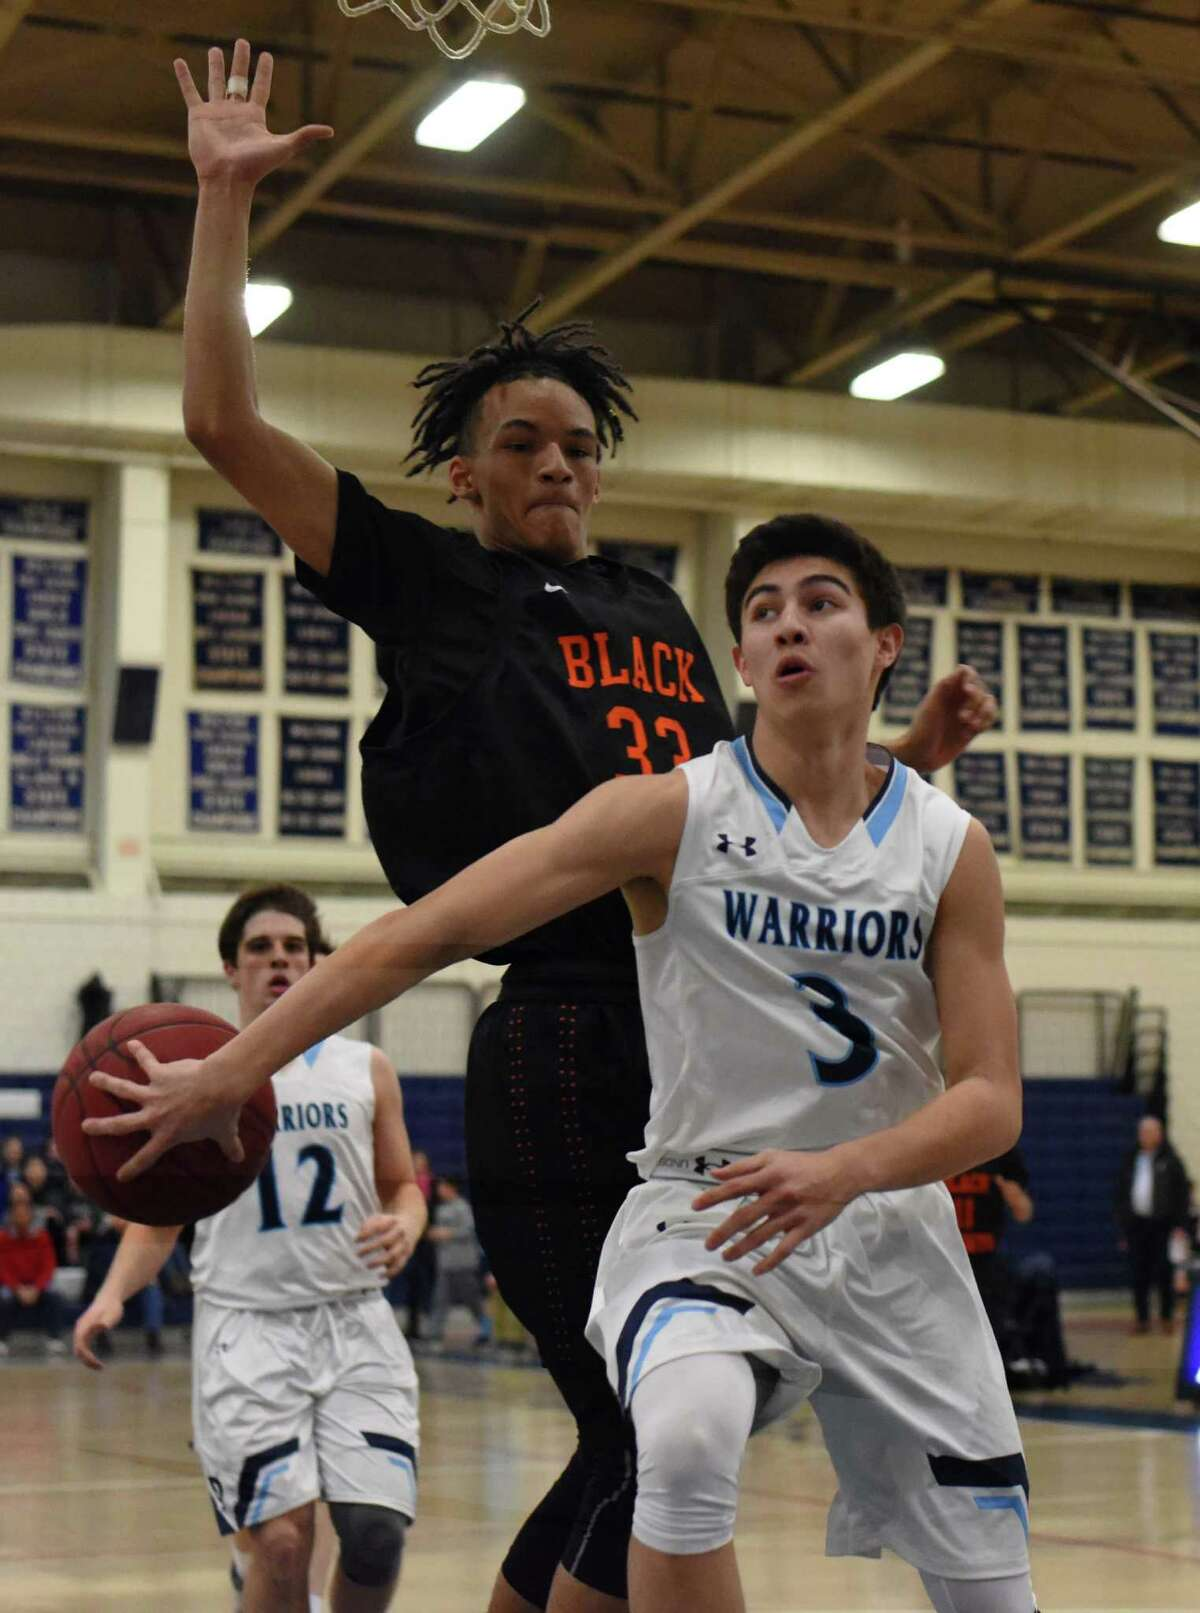 Matt Kronenberg of Wilton (3) dumps a no-look pass behind him for an easy layup during Monday's FCIAC boys basketball game against Stamford. The host Warriors defeated the Black Knights 67-56.